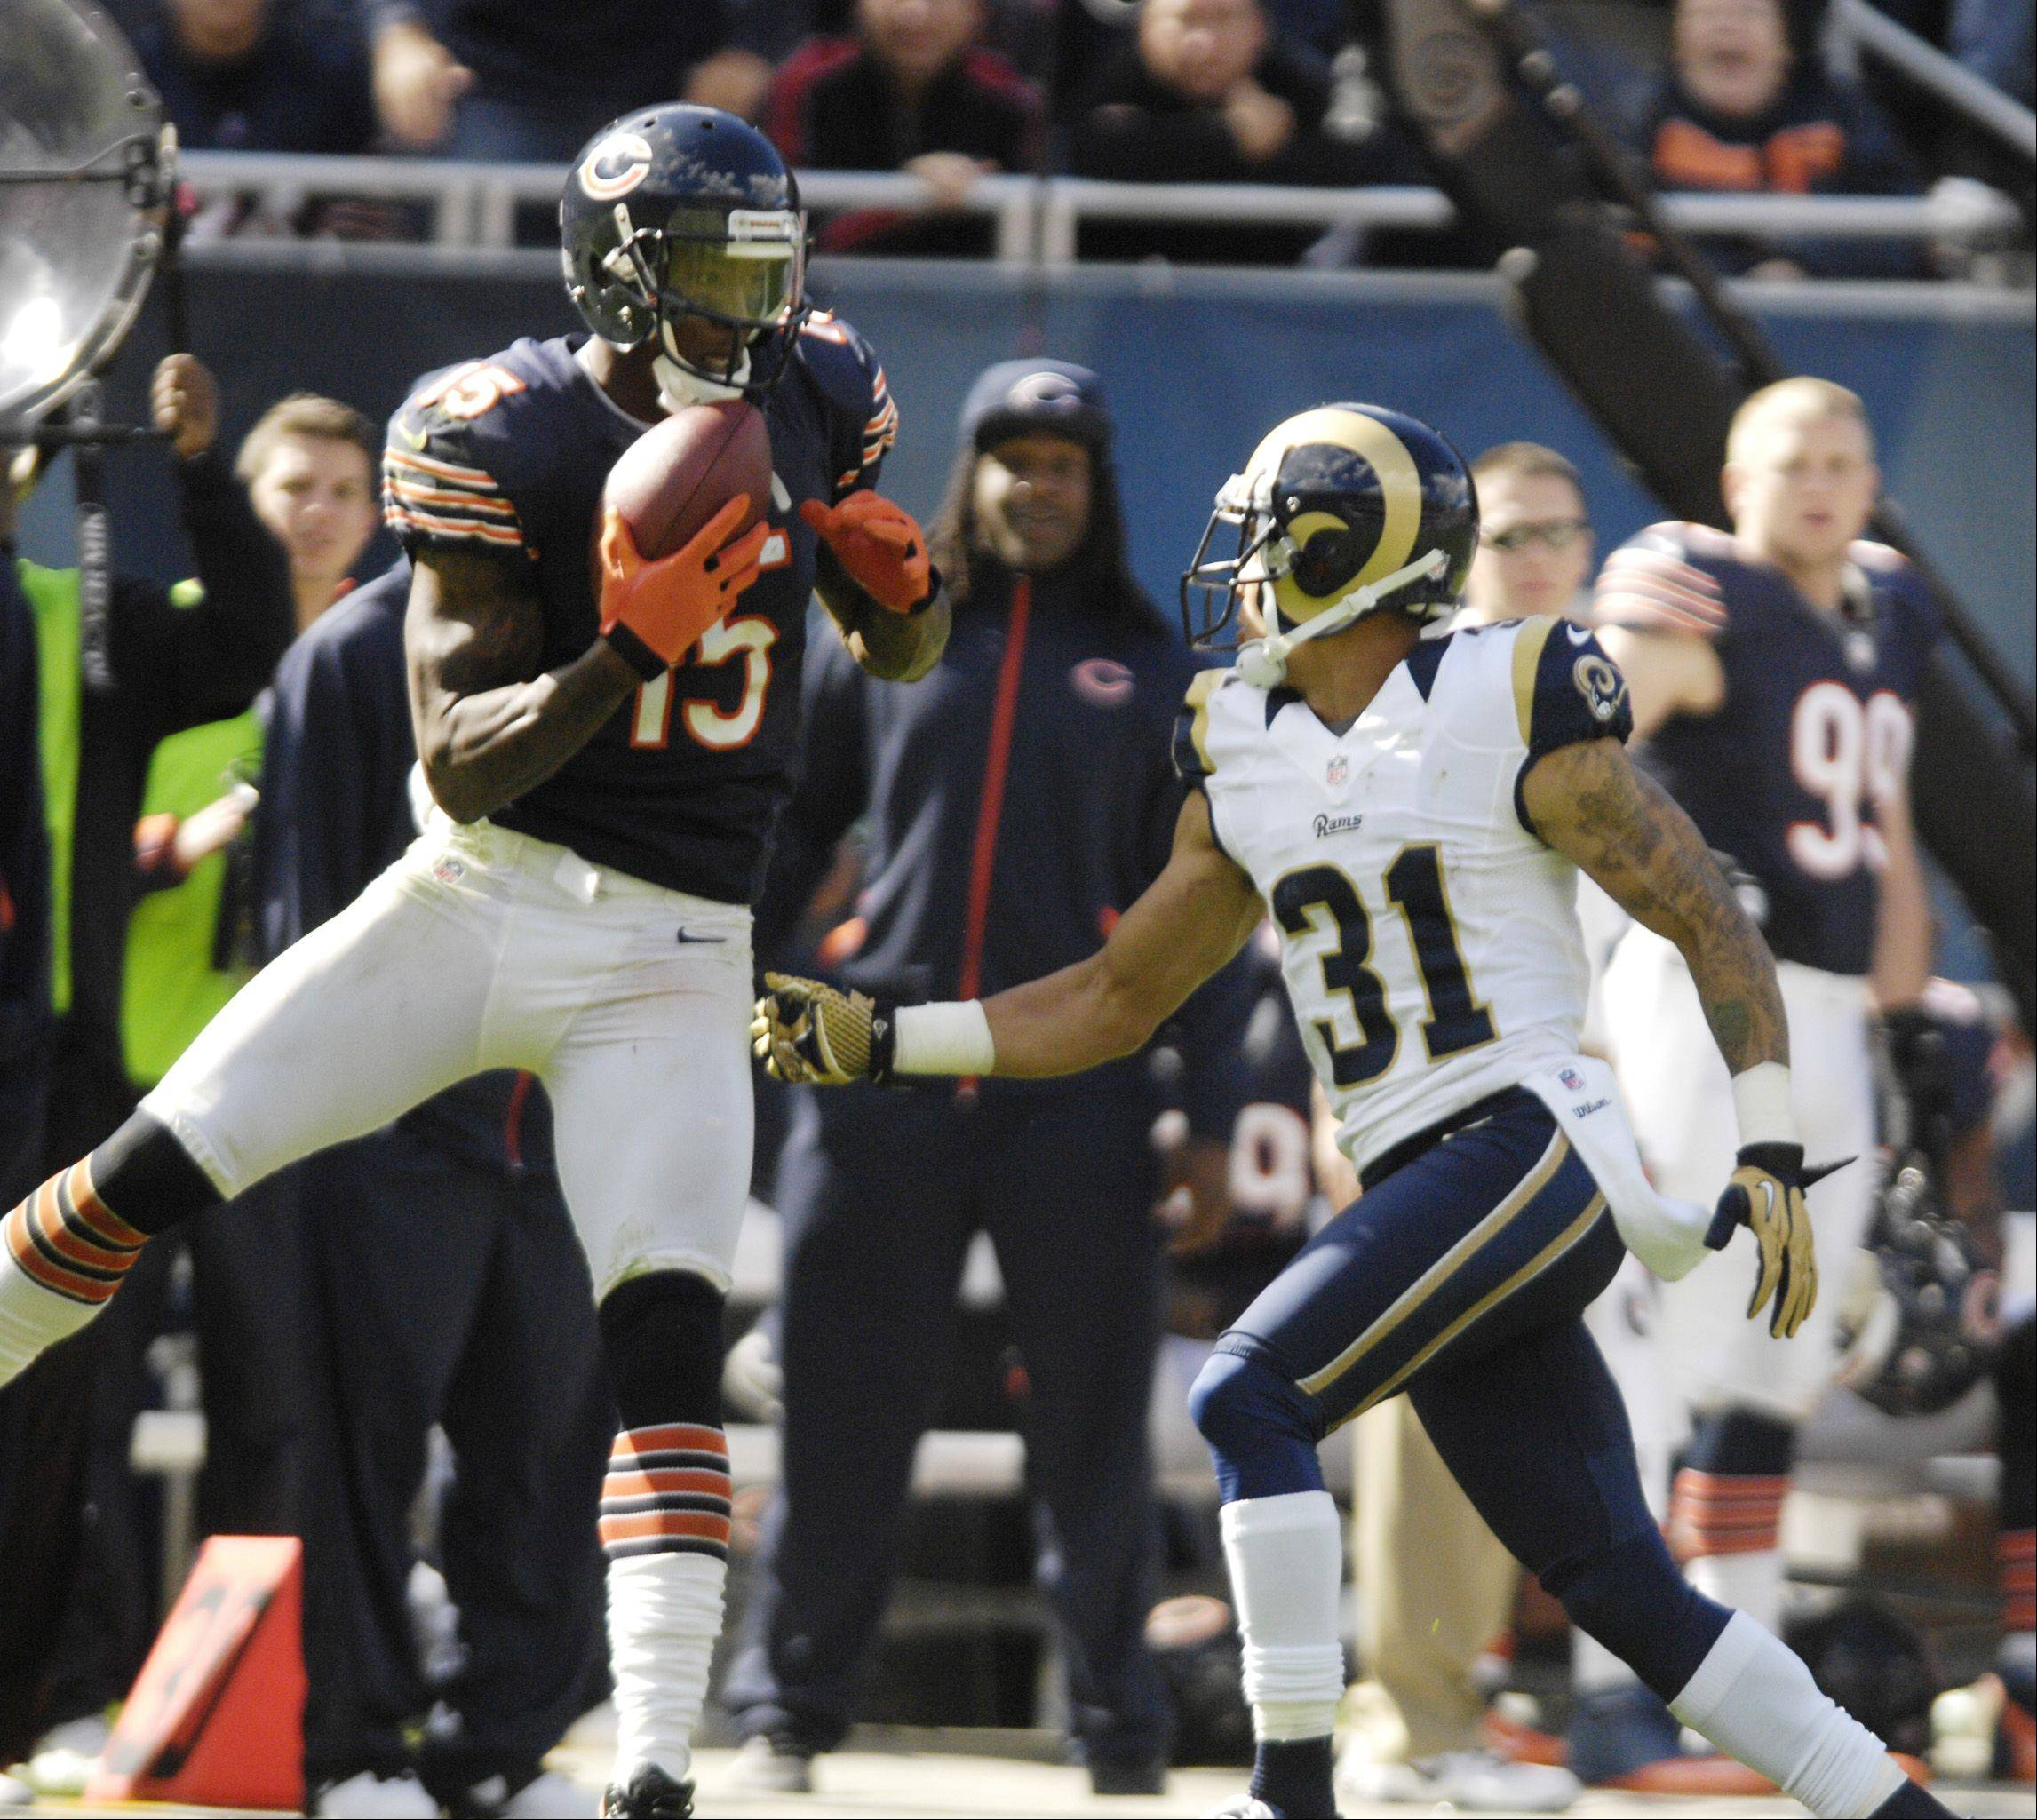 Chicago Bears wide receiver Brandon Marshall makes a catch as St. Louis Rams cornerback Cortland Finnegan quickly takes him down.